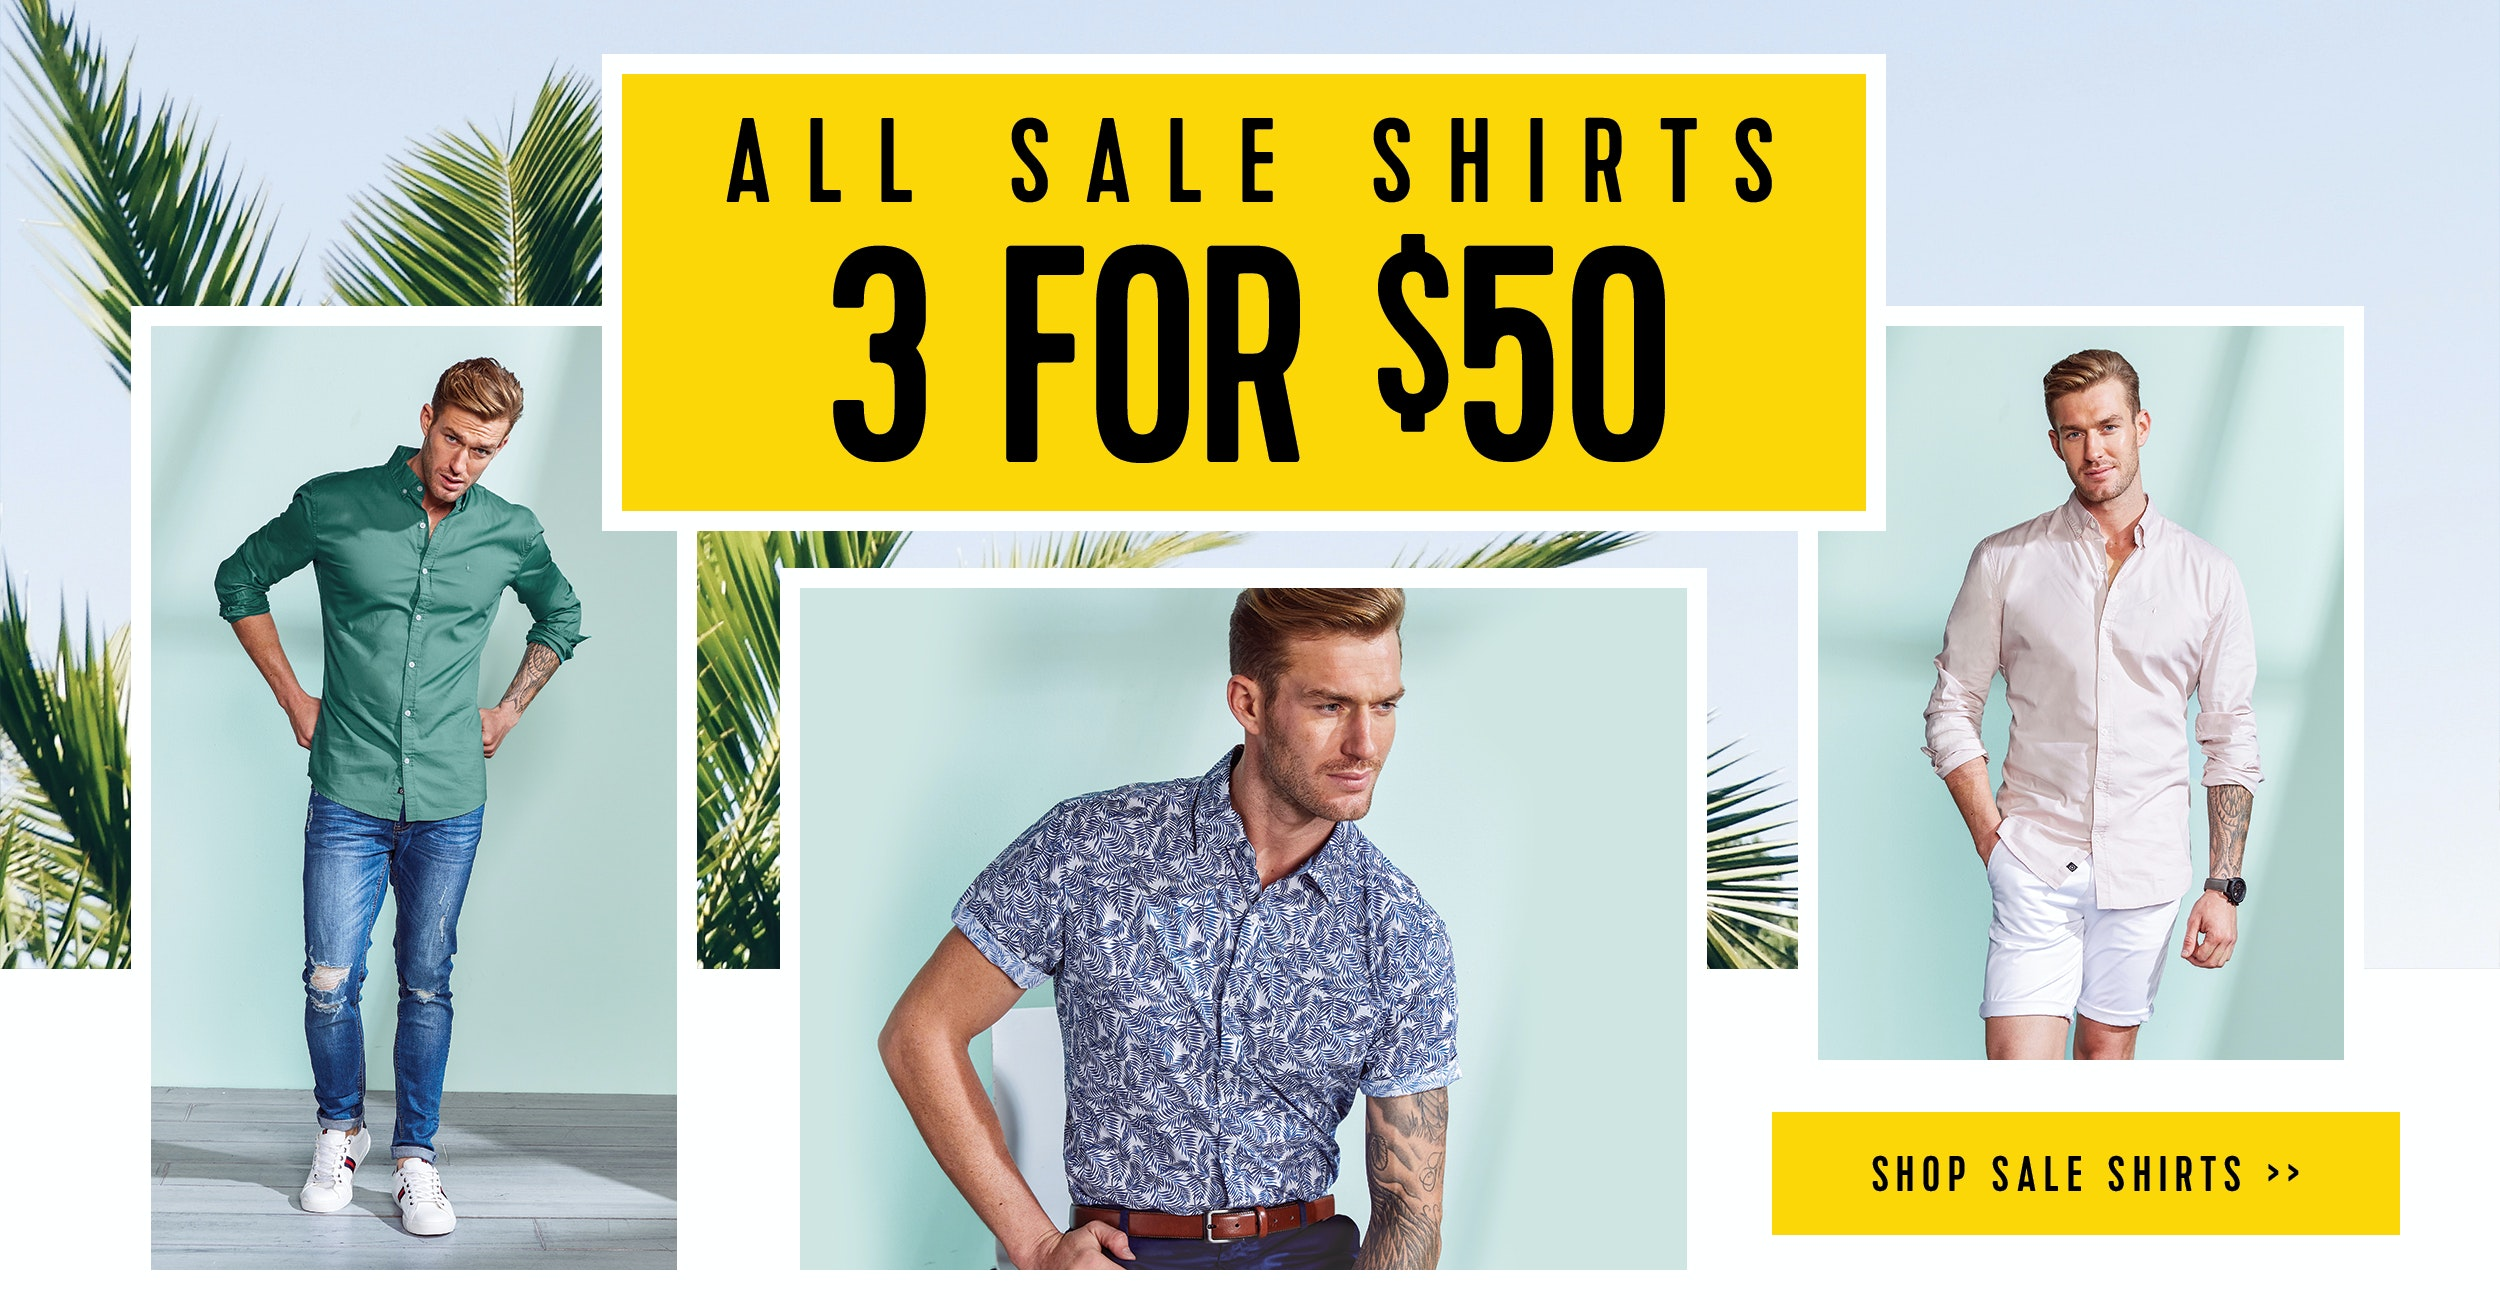 Connor Menswear Shirts Now On Sale